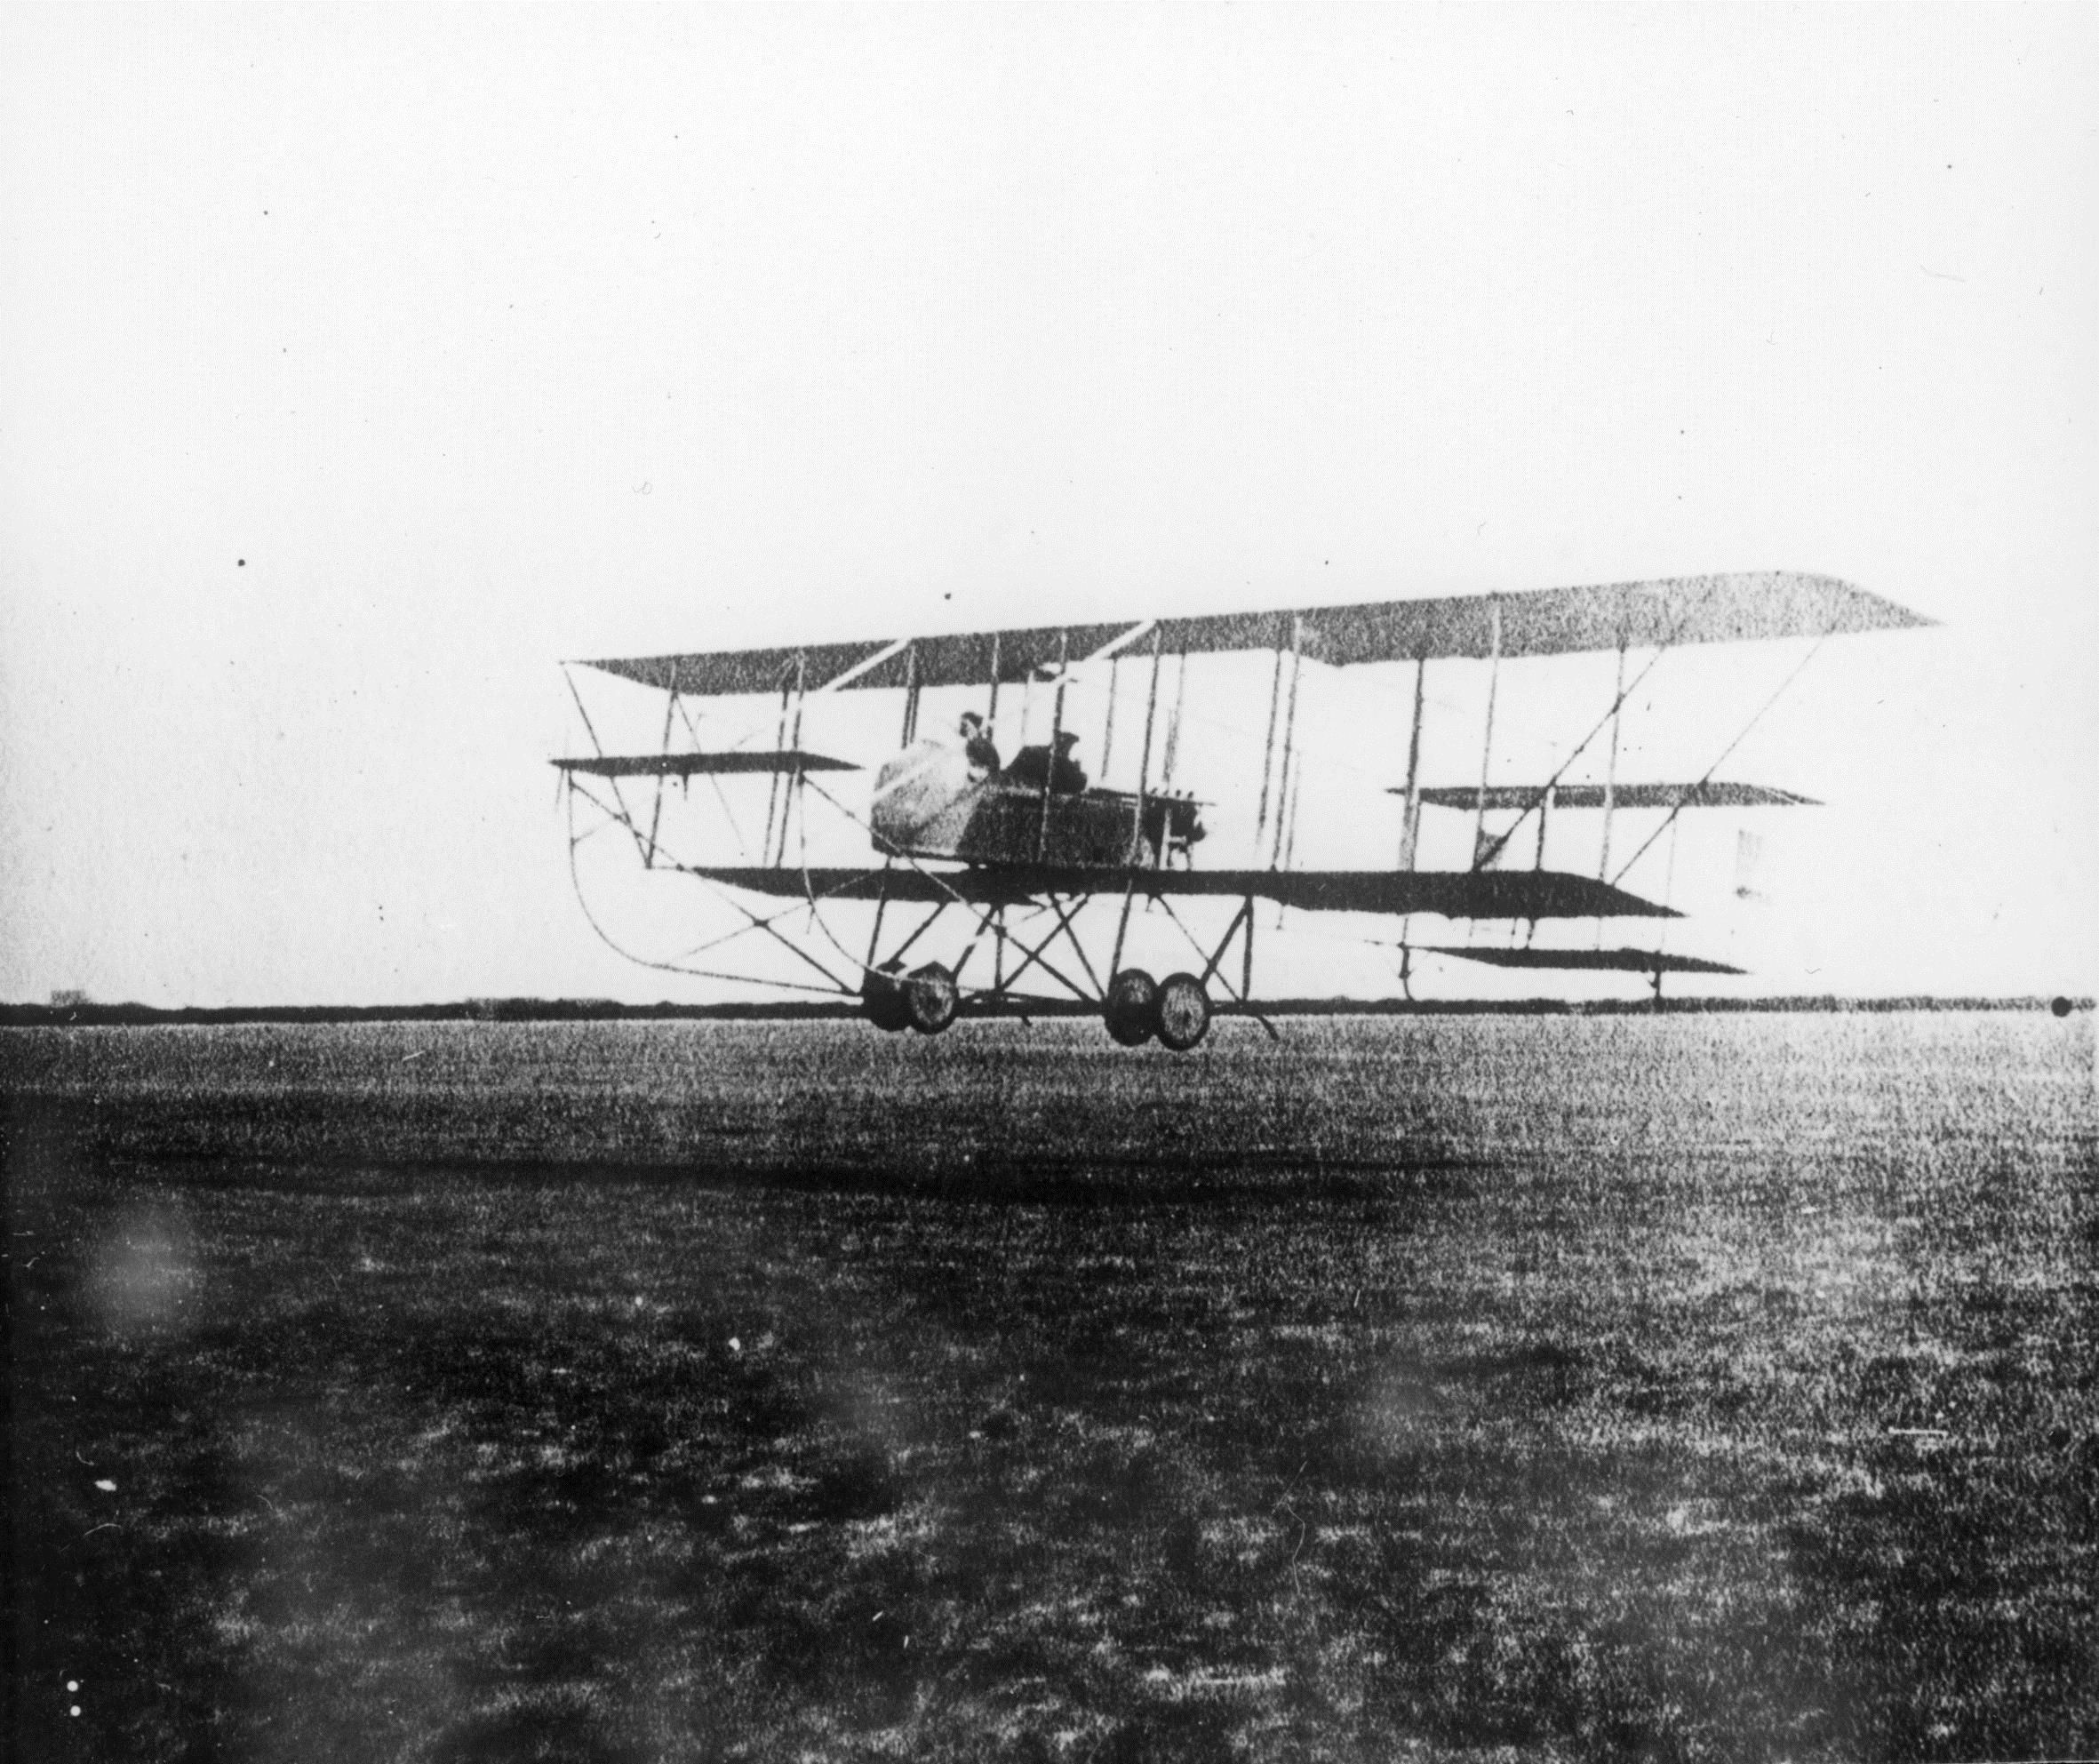 Maurice Farman Longhorn taking off from an unknown